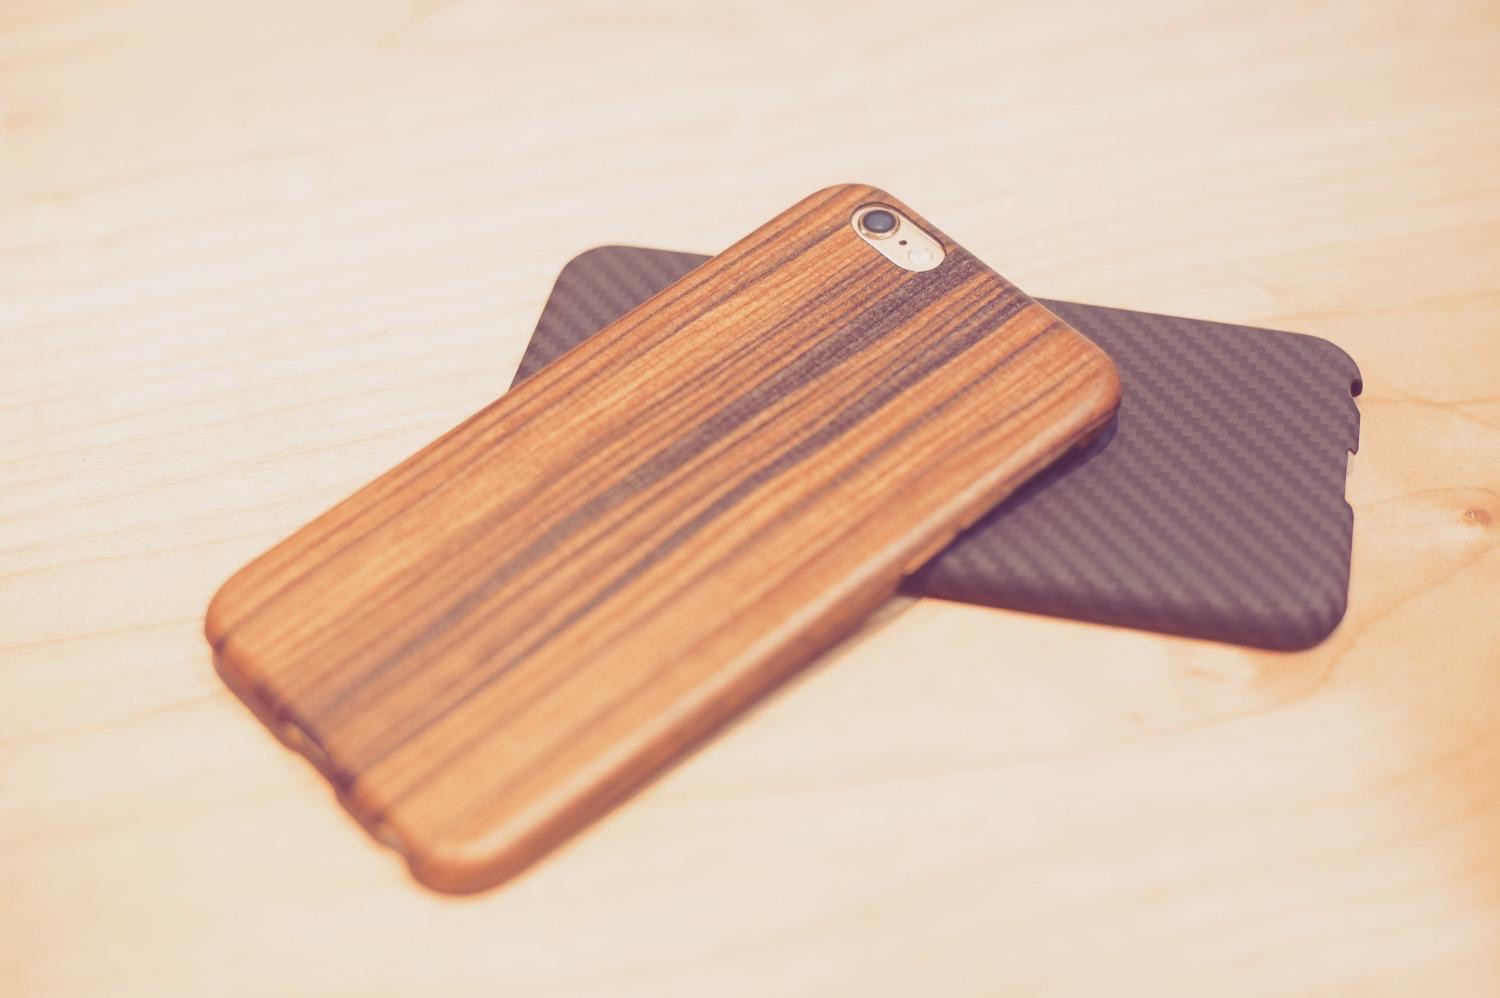 Pitaka iphone6 case19